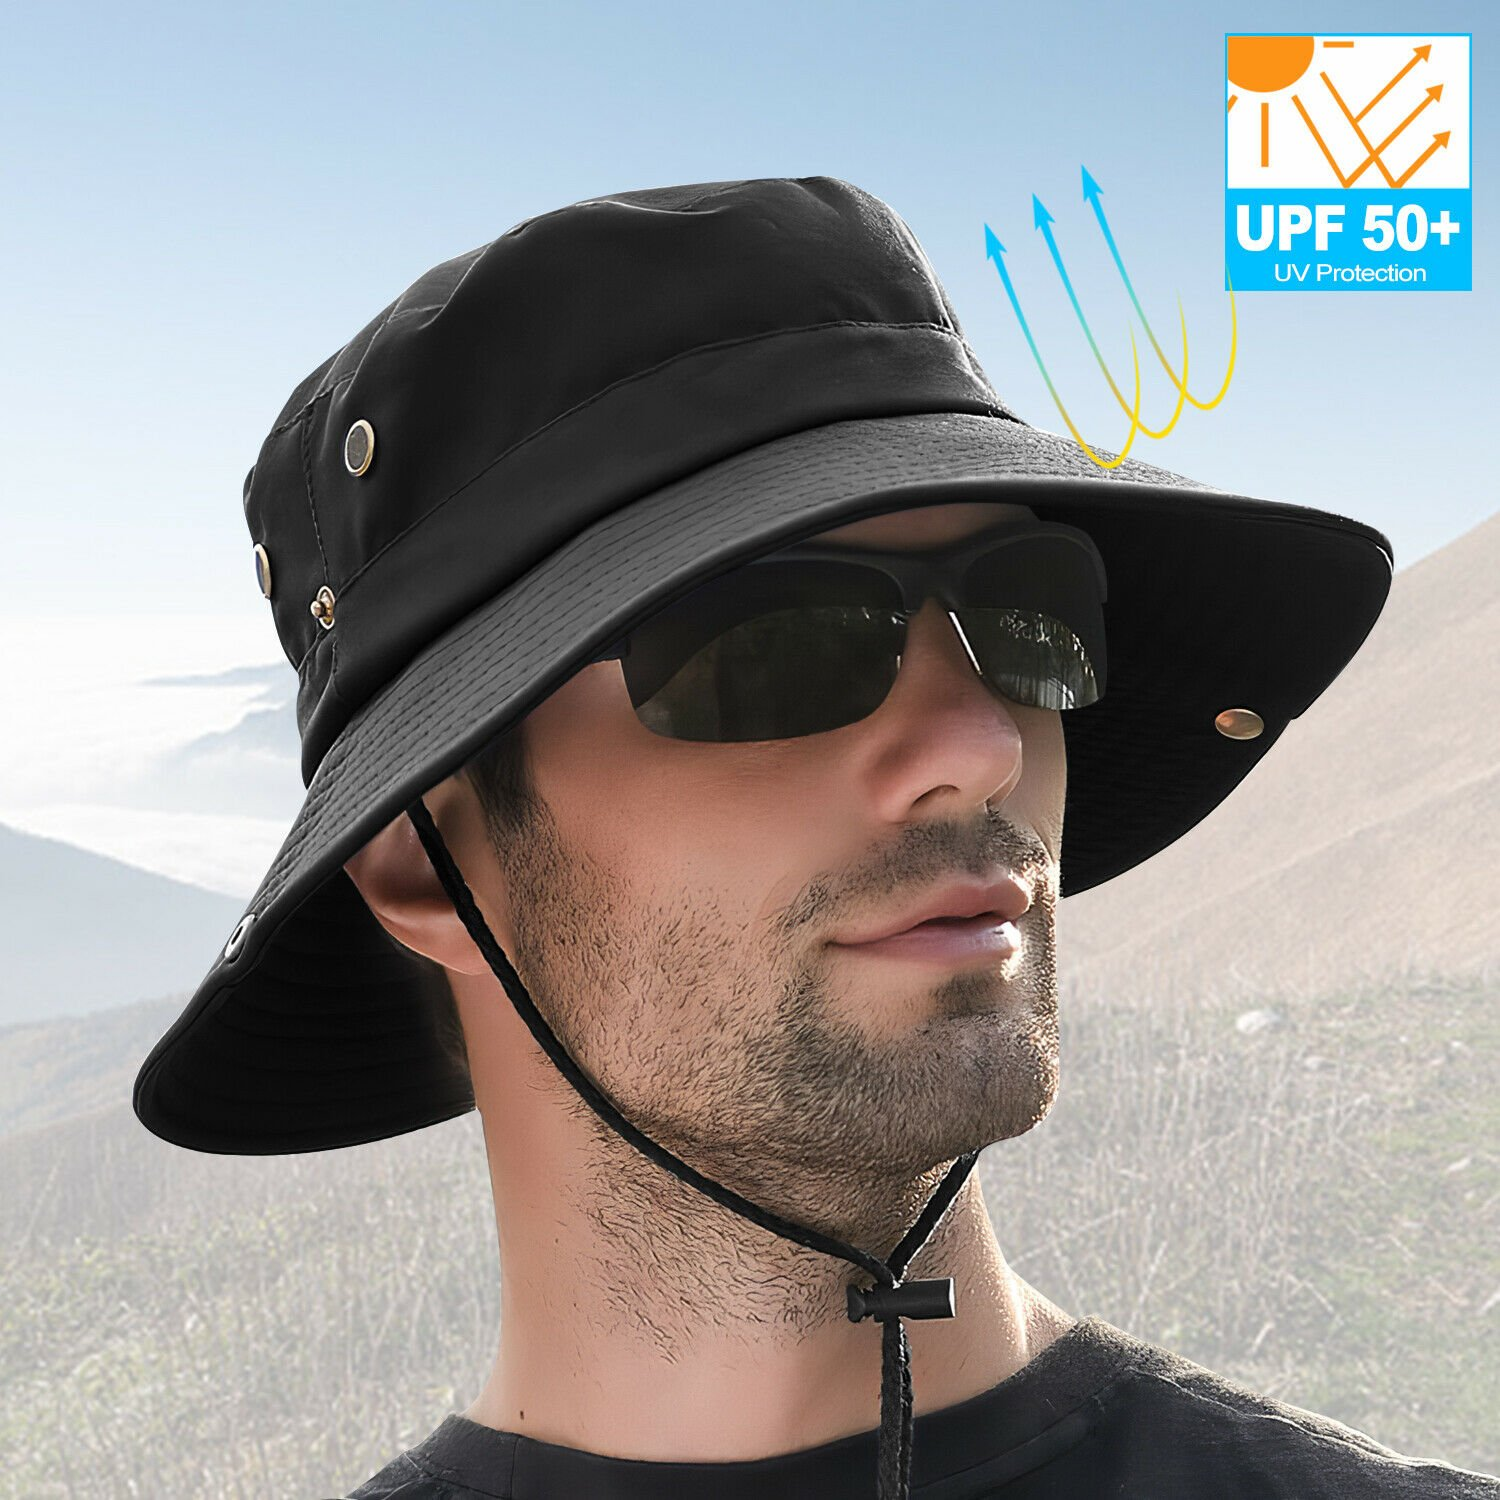 Outdoor Sun Visor Hat UV Protection Cap Hiking Fishing Travel for Wome...